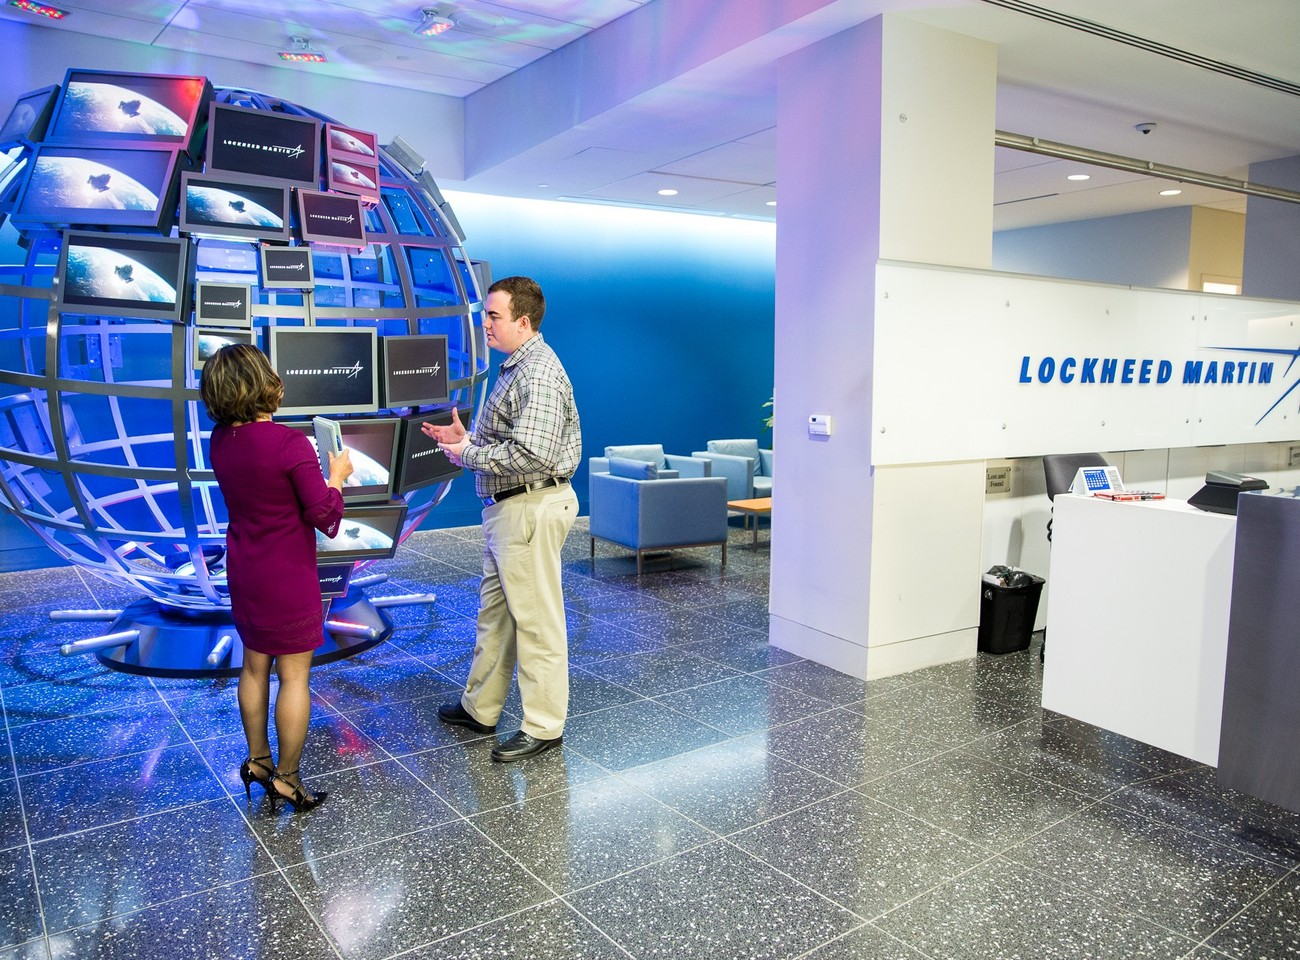 Lockheed Martin Careers